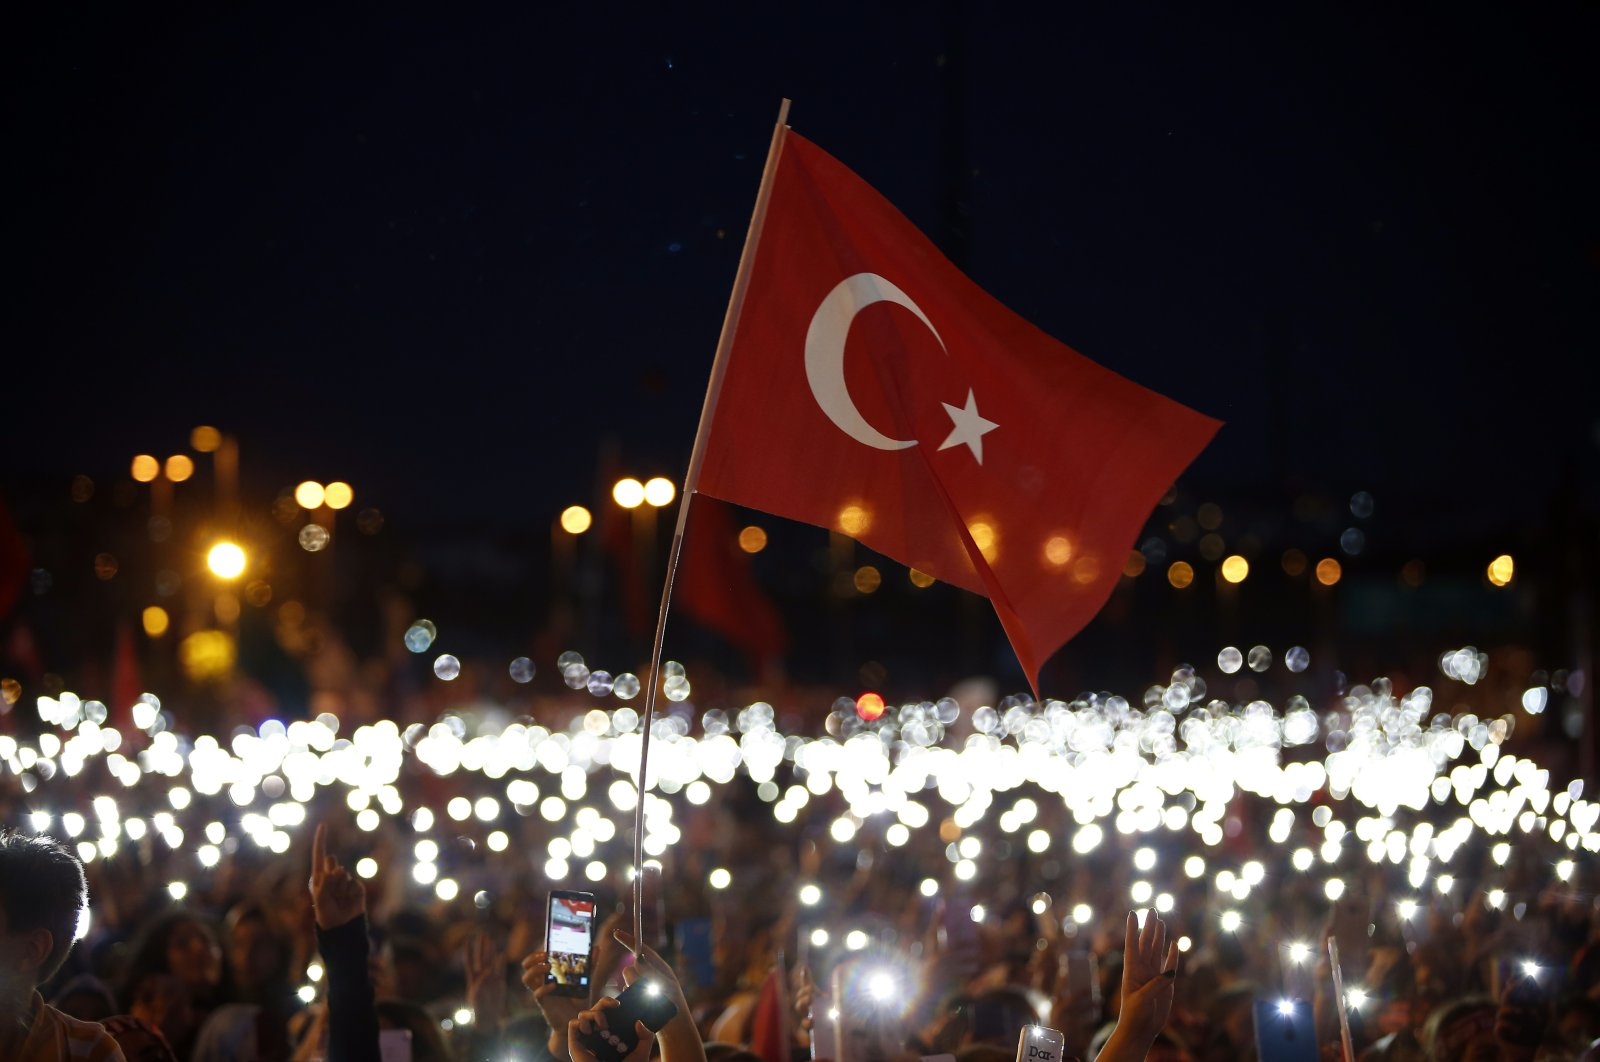 People use their mobile phones as flashlights as they attend a commemoration event for the second anniversary of the July 15 failed coup attempt, in Istanbul, Turkey, July 15, 2018. (AP Photo)